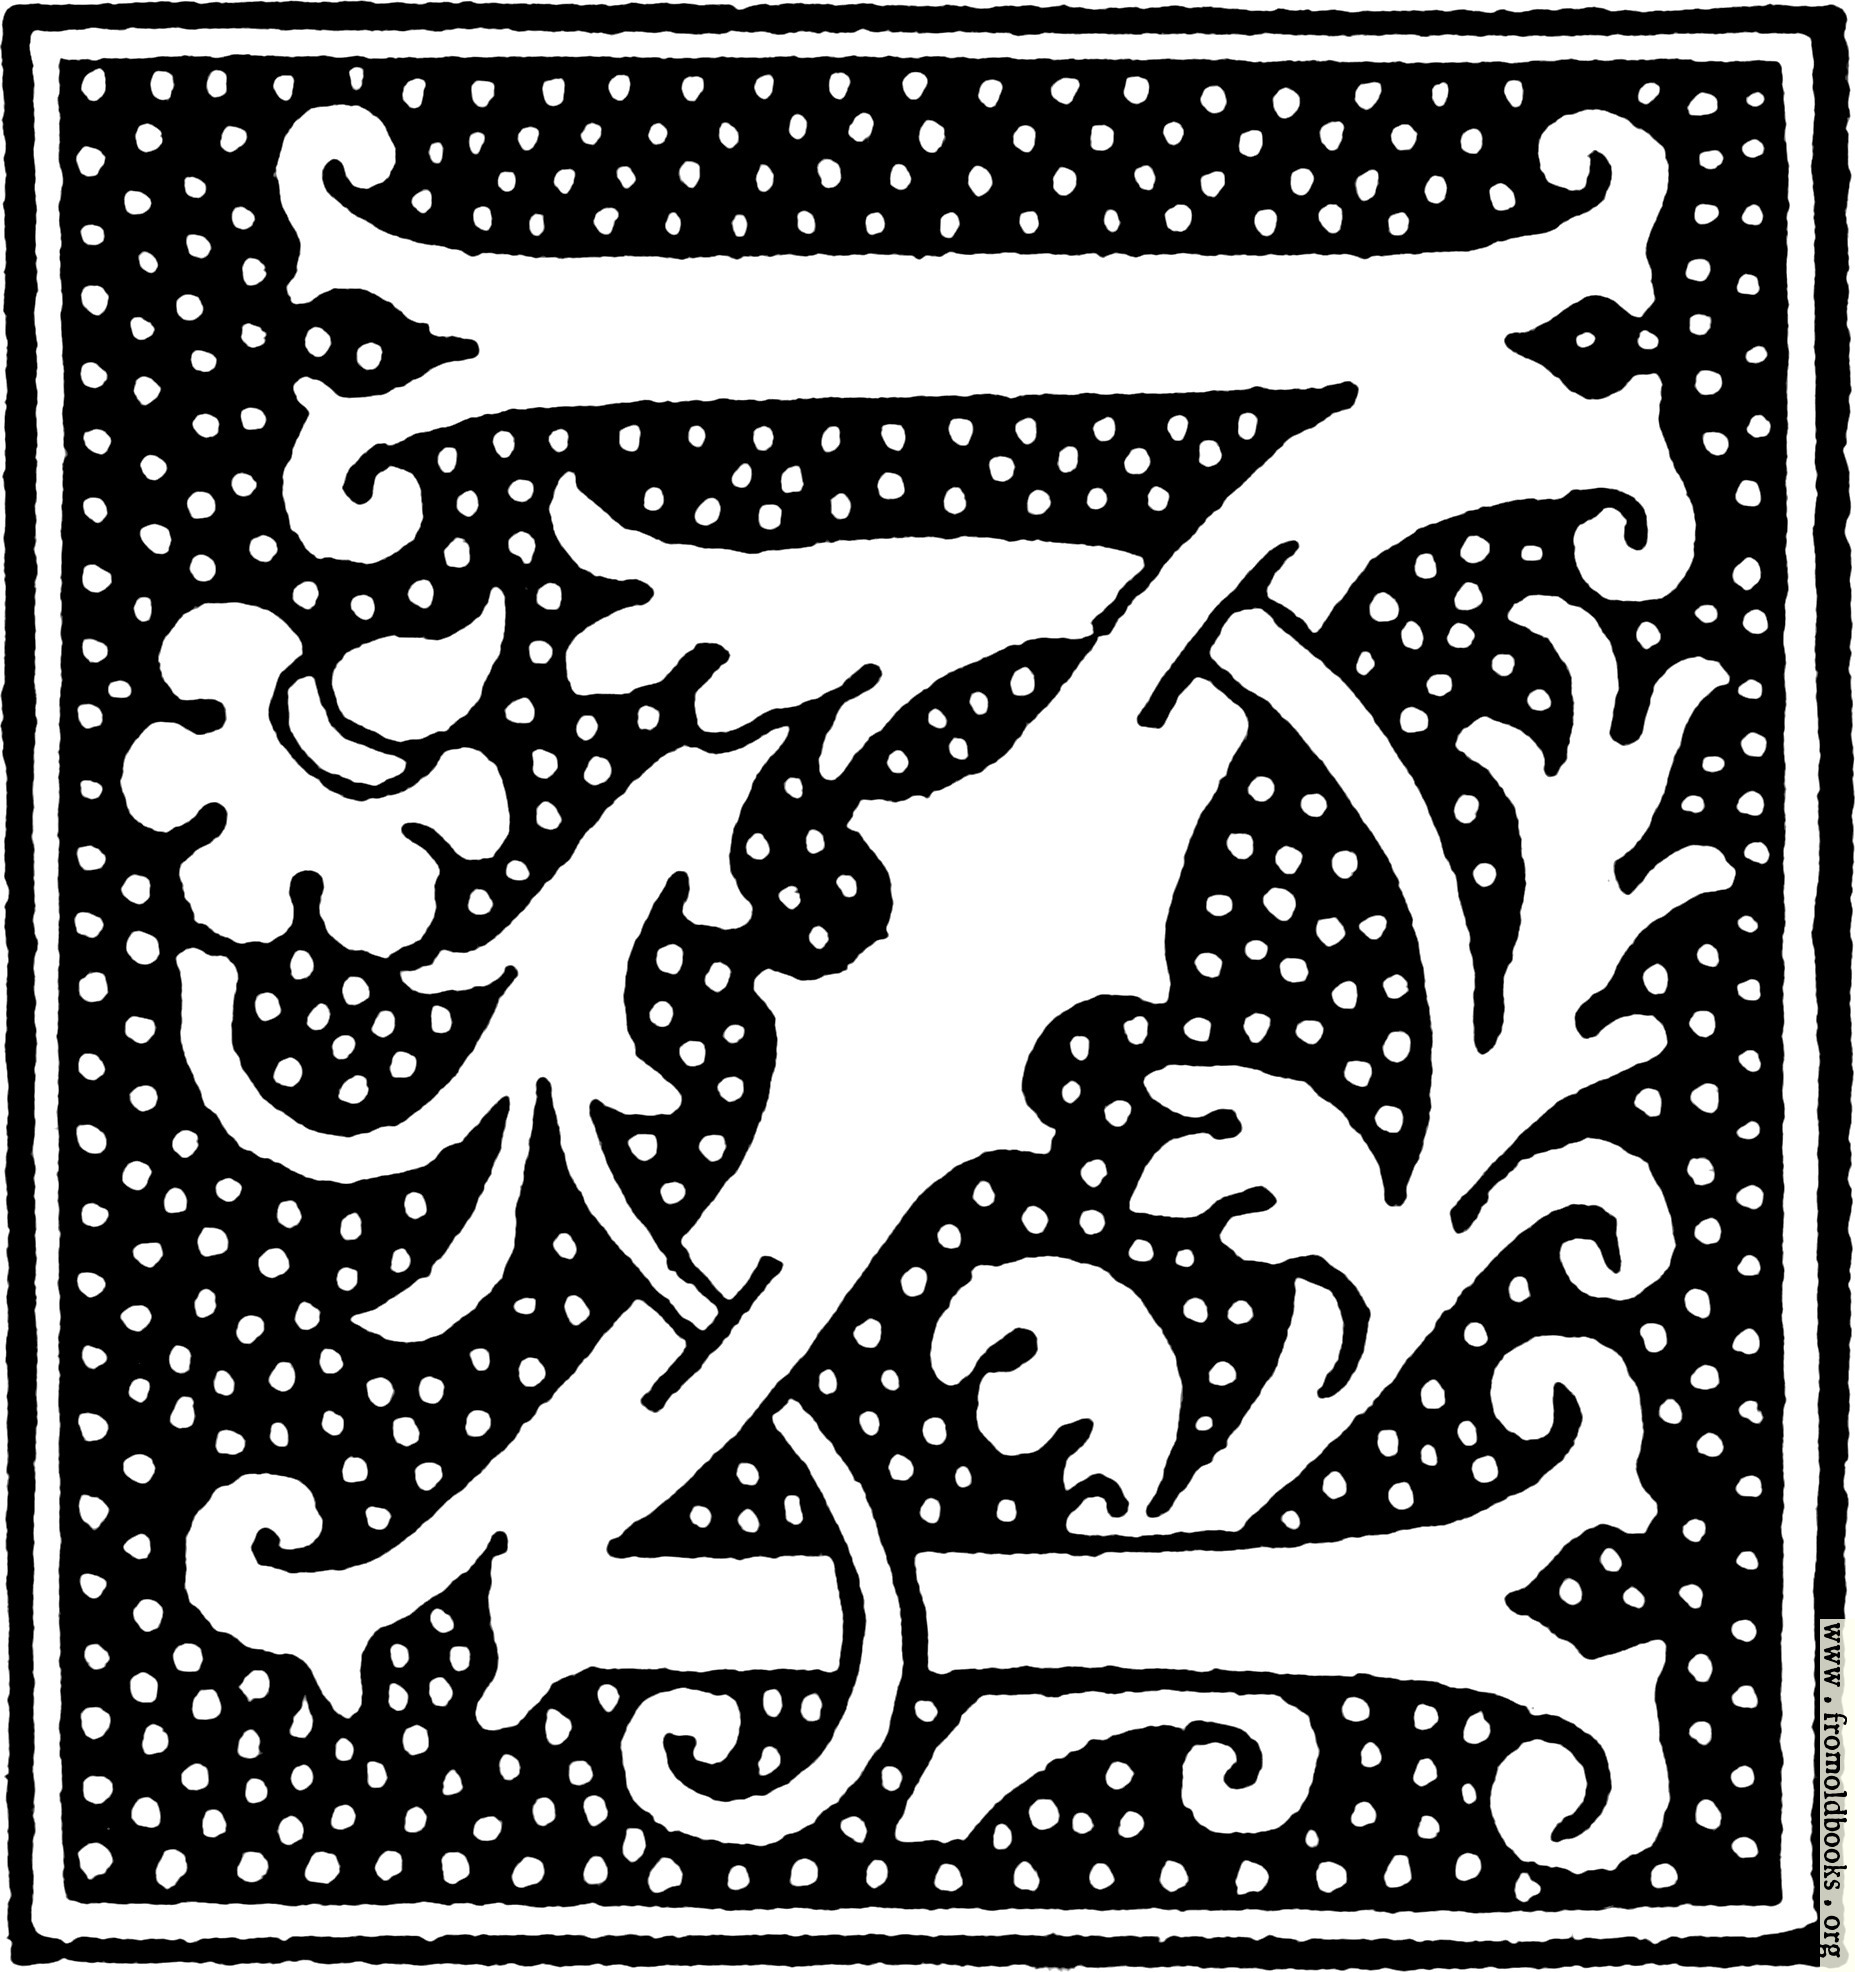 Clipart initial letter z from beginning of the 16th century 1855x1972 456k jpg free download altavistaventures Images